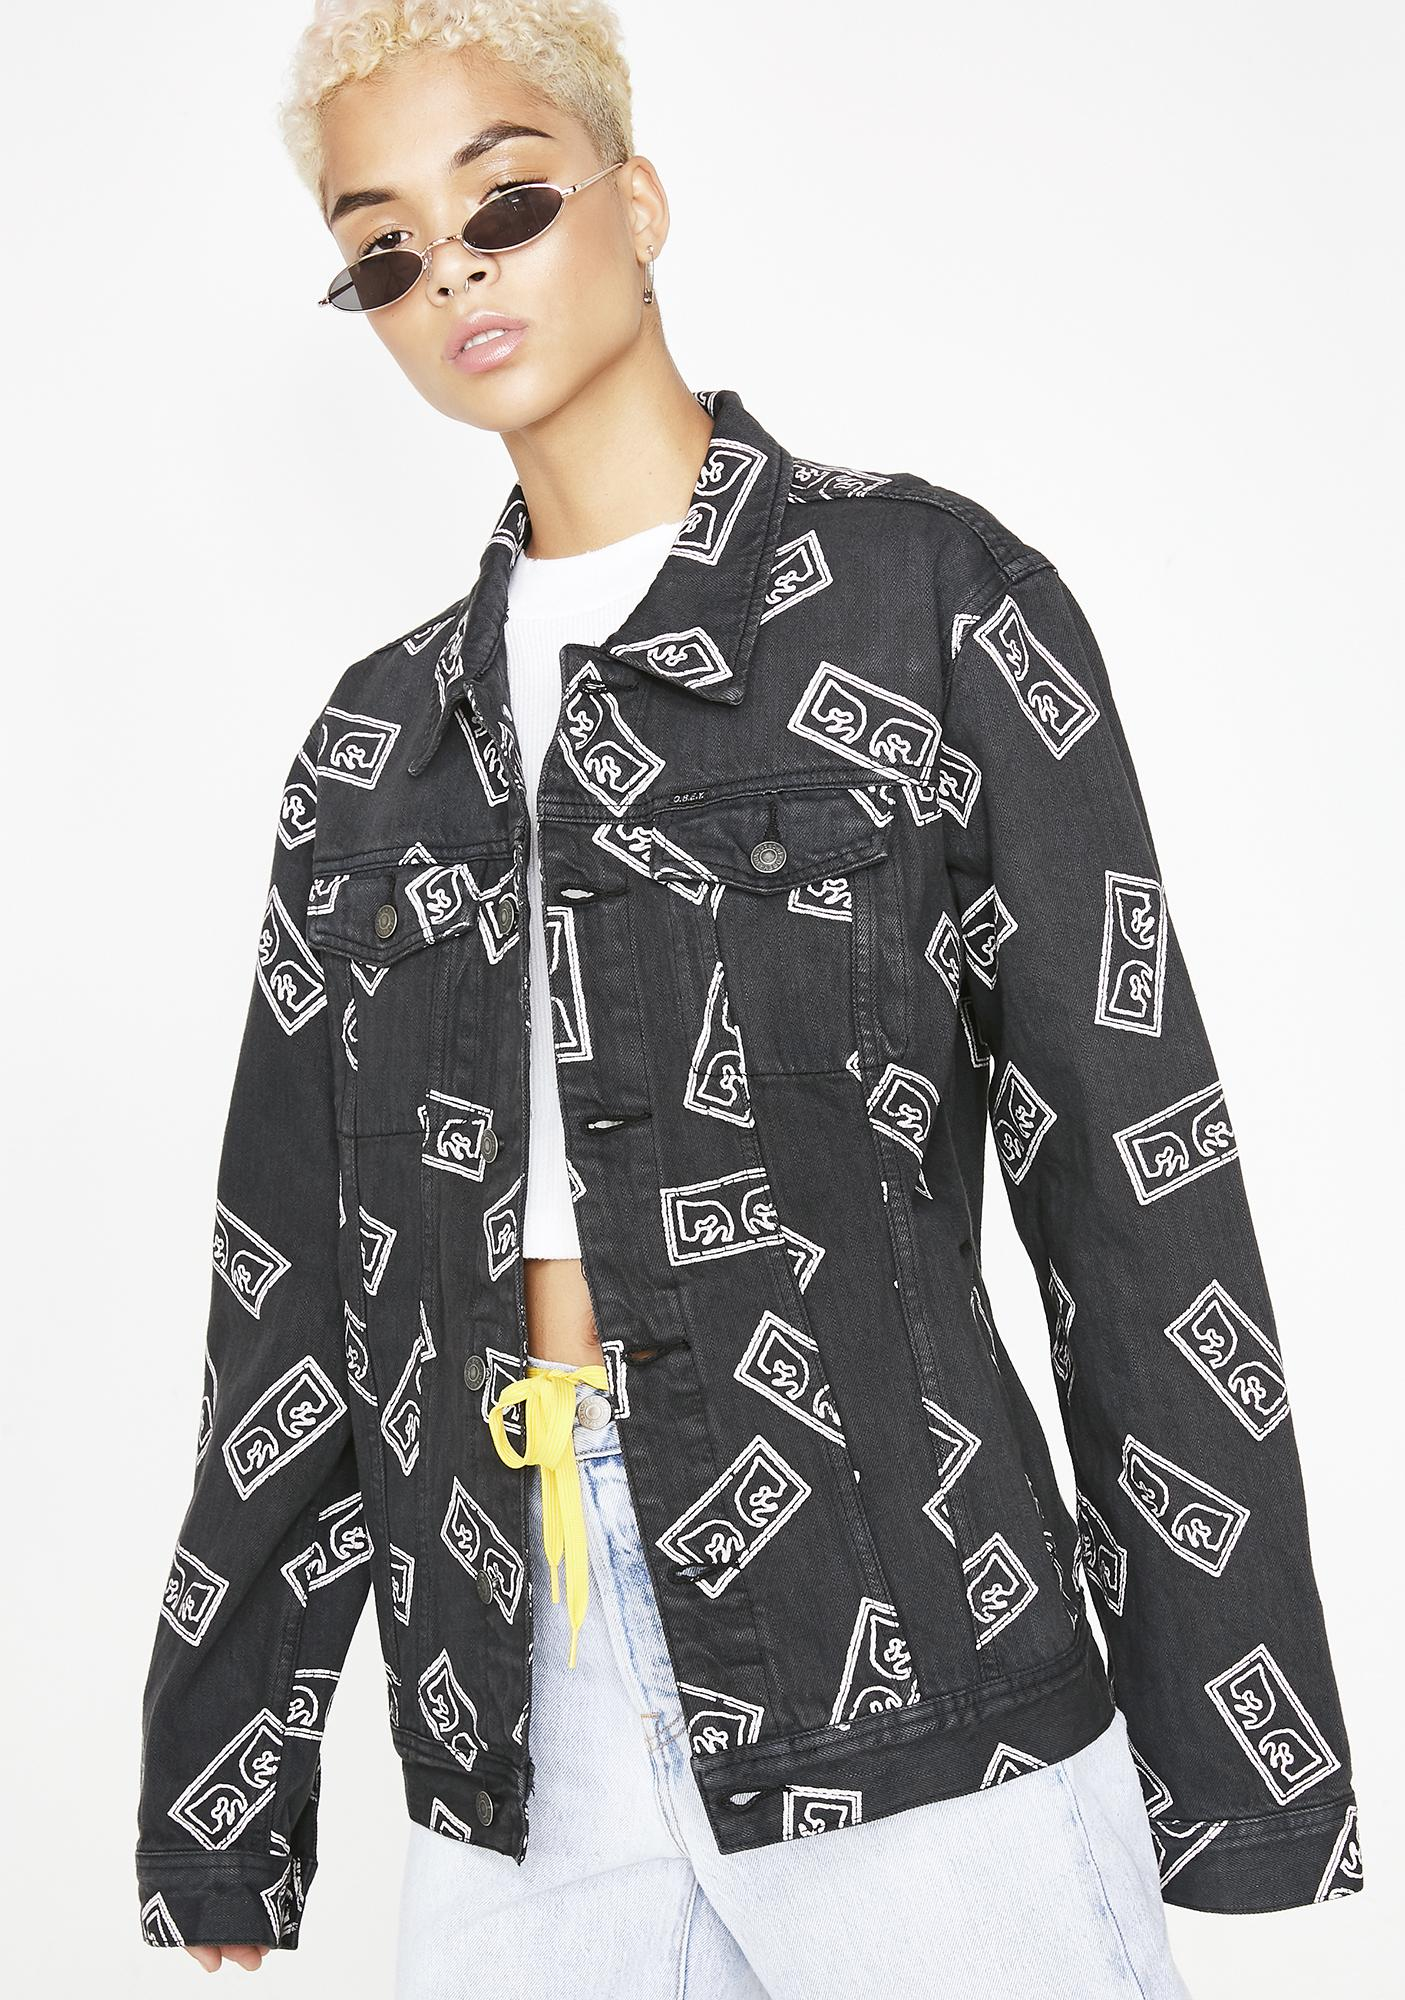 Obey Bender Eyes Jacket